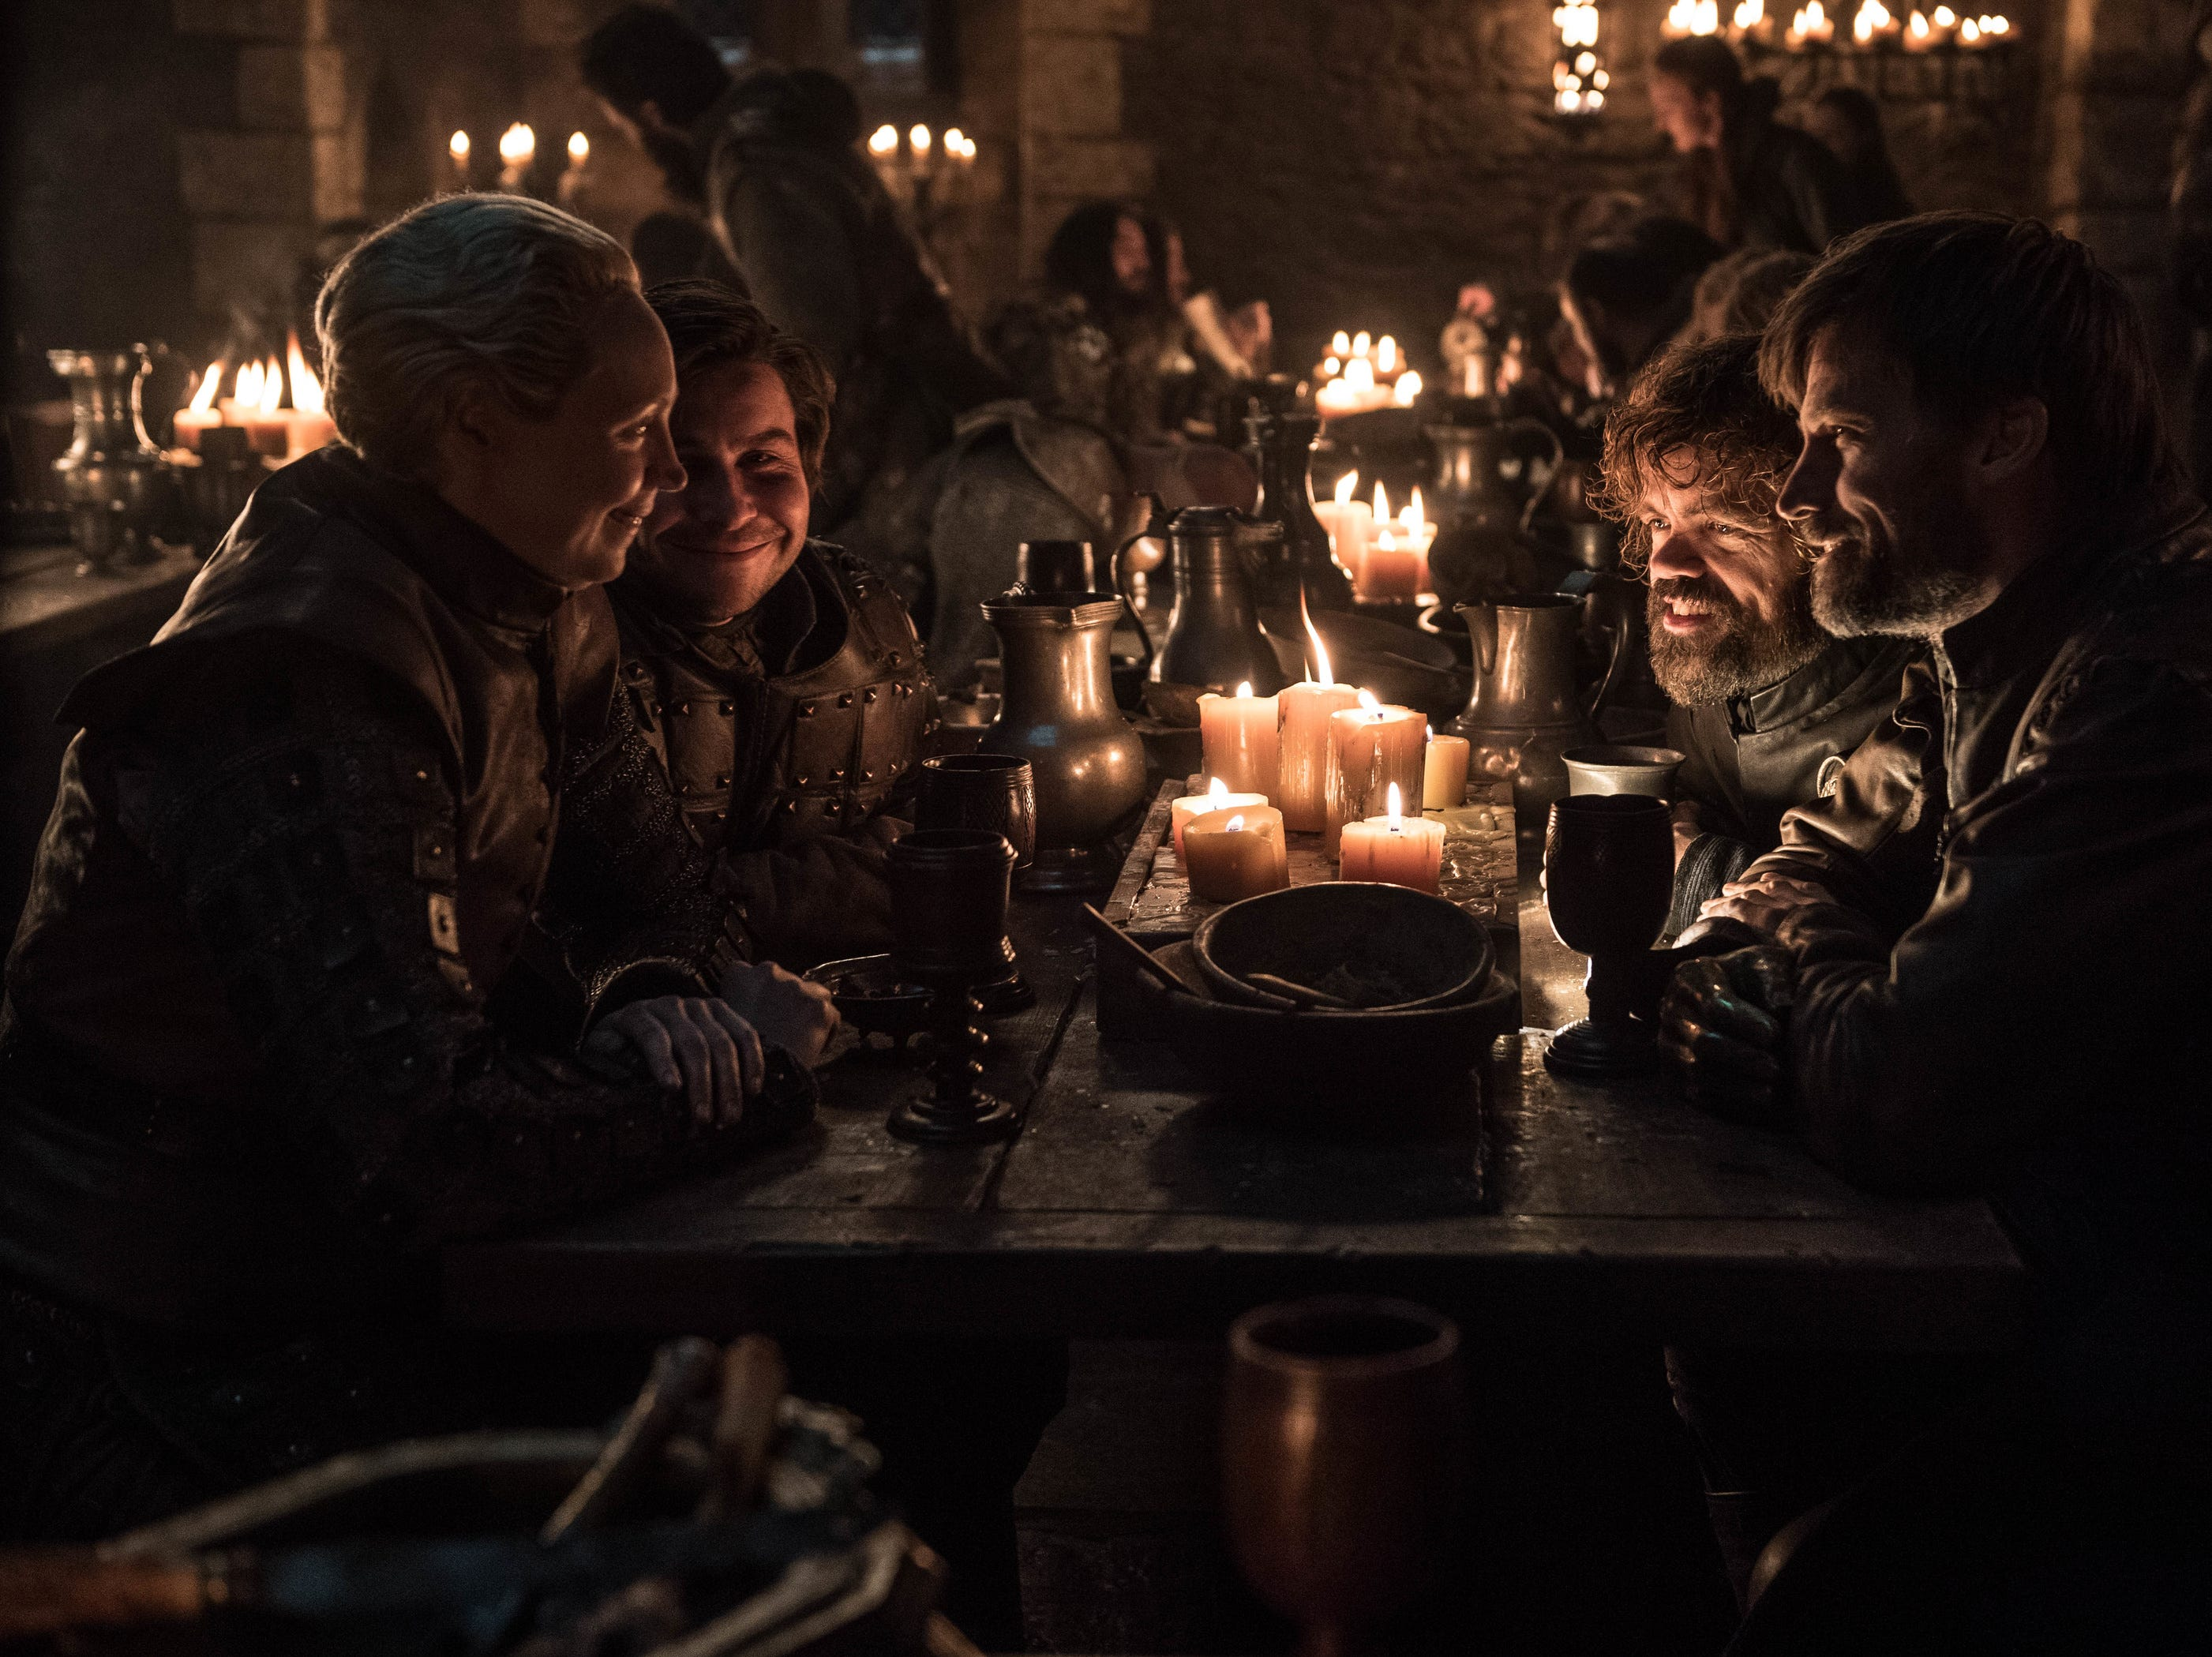 Brienne of Tarth (Gwendoline Christie), left, Podrick (Daniel Portman), Tyrion Lannister (Peter Dinklage) and Jaime Lannister (Nikolaj Coster-Waldau) take part in a drinking game during the Winterfell celebration.